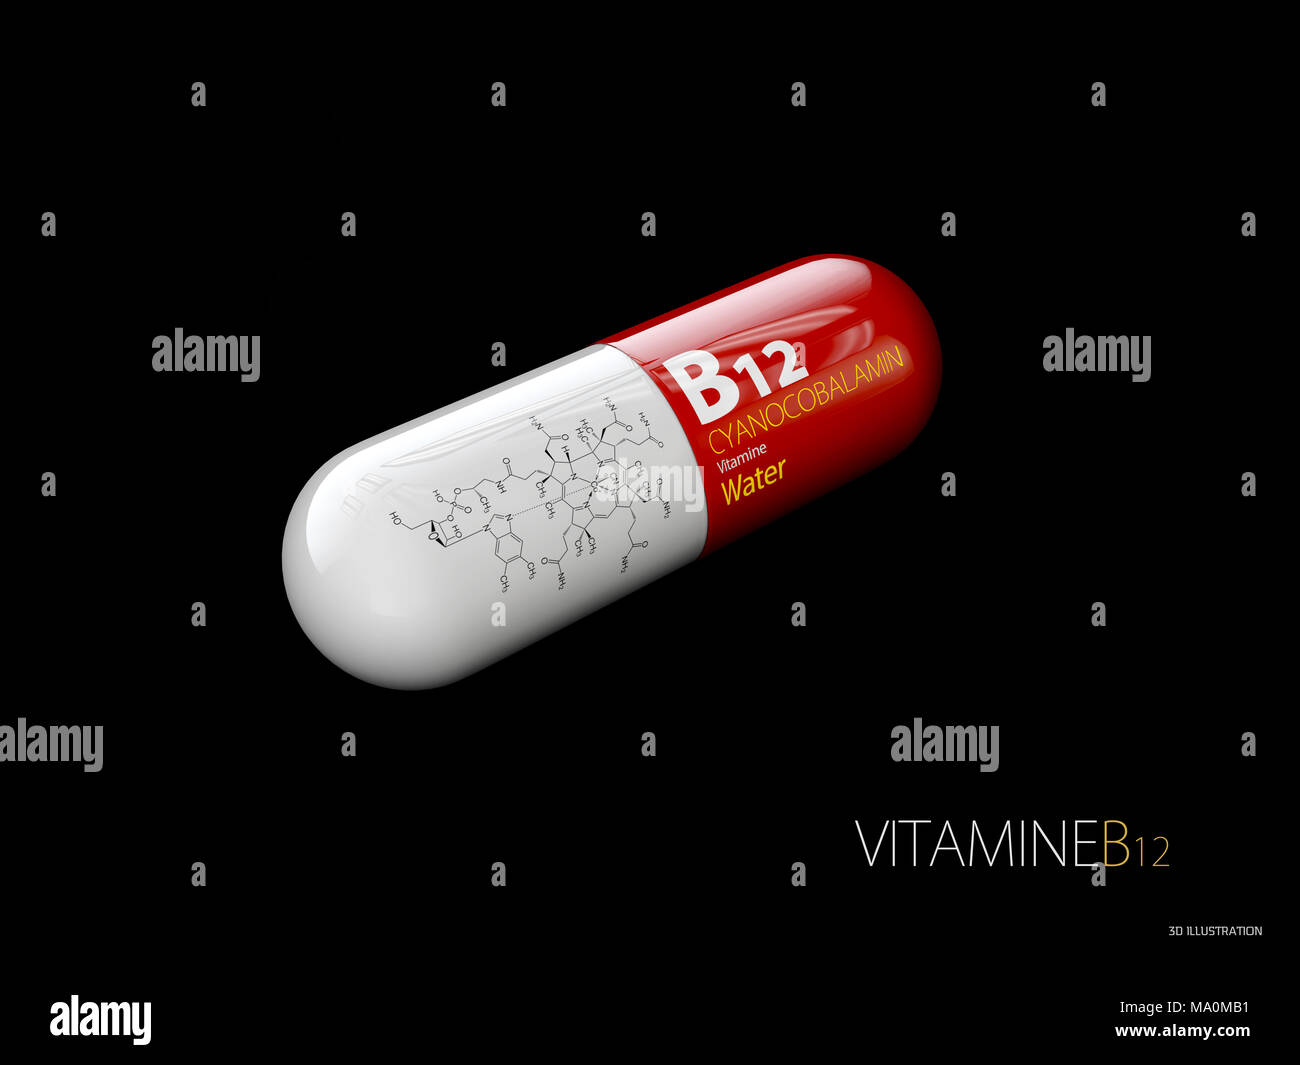 3d Illustration of Vitamin B12 Capsule with formule, isolated black. - Stock Image